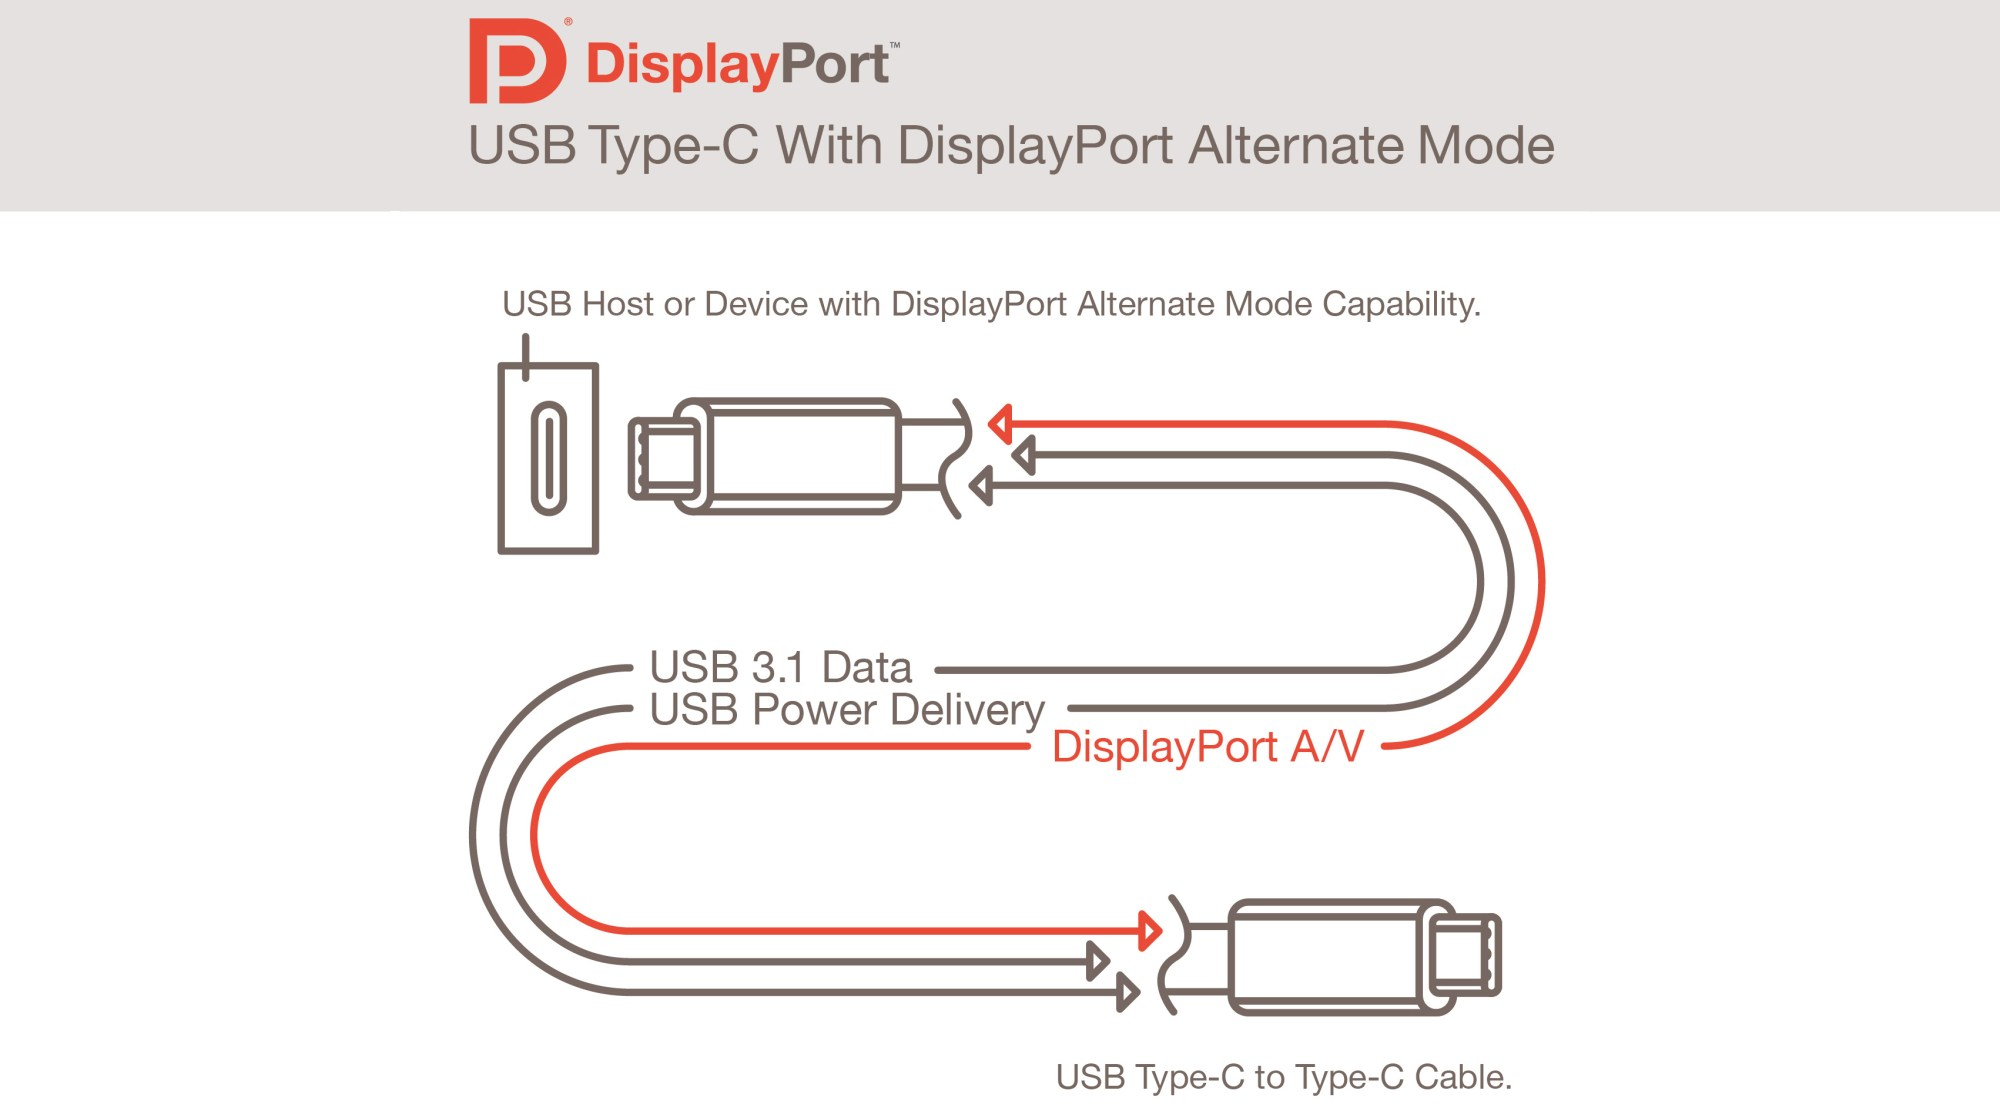 hight resolution of usb type c connector will also support displayport finally one cable will fit